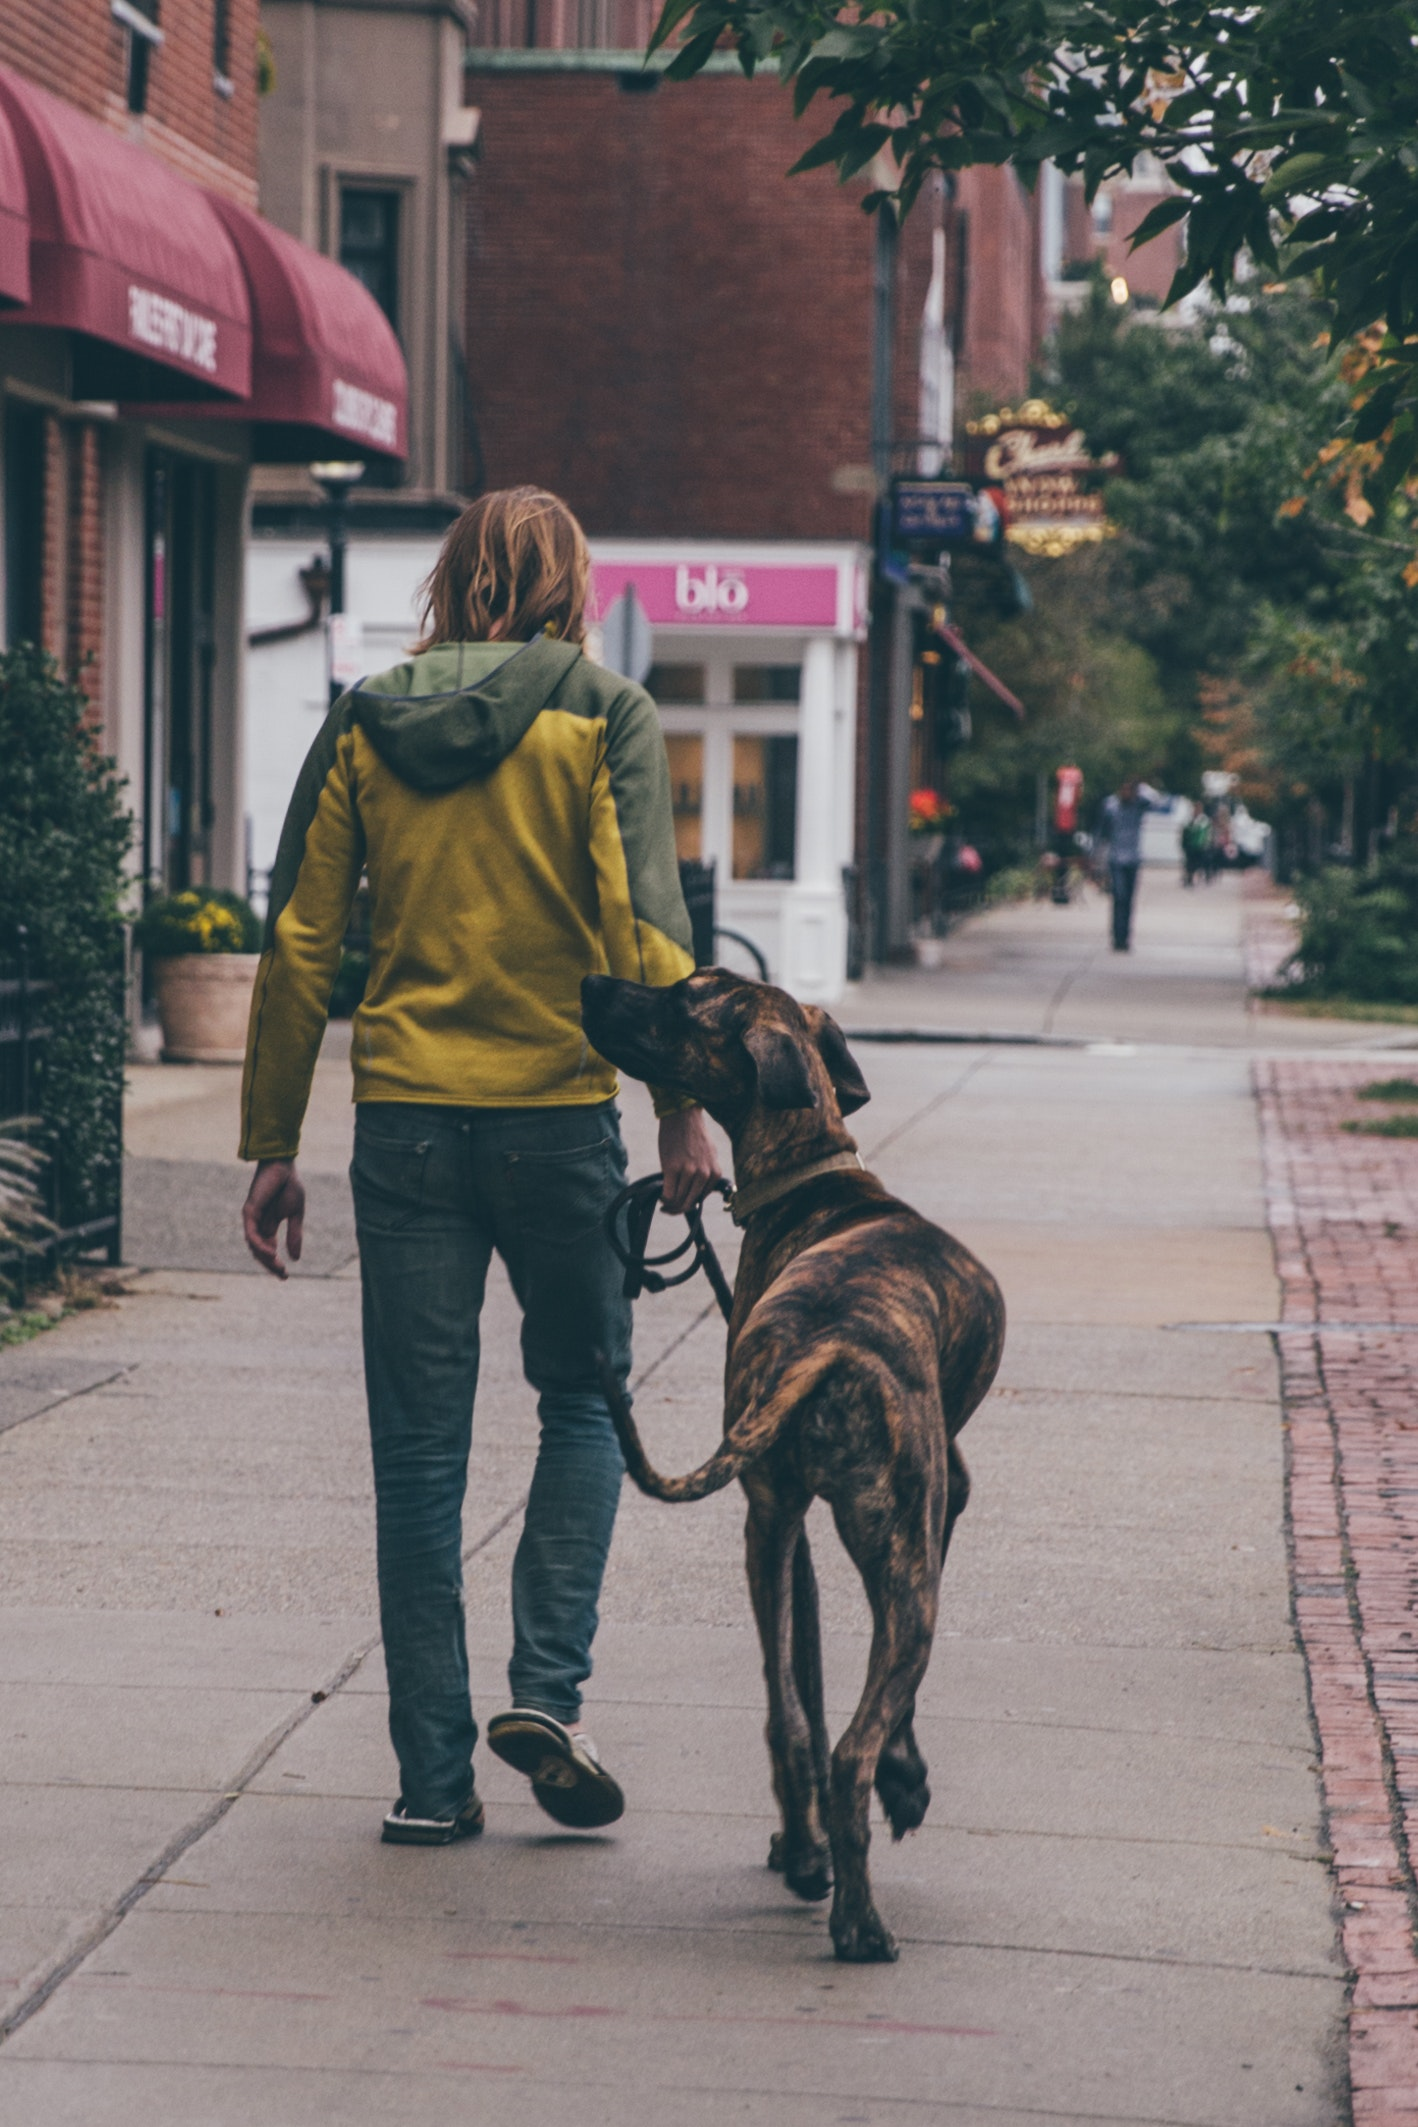 A Man Walking in The Street With His Dog, Adult, Person, Walking, Urban, HQ Photo